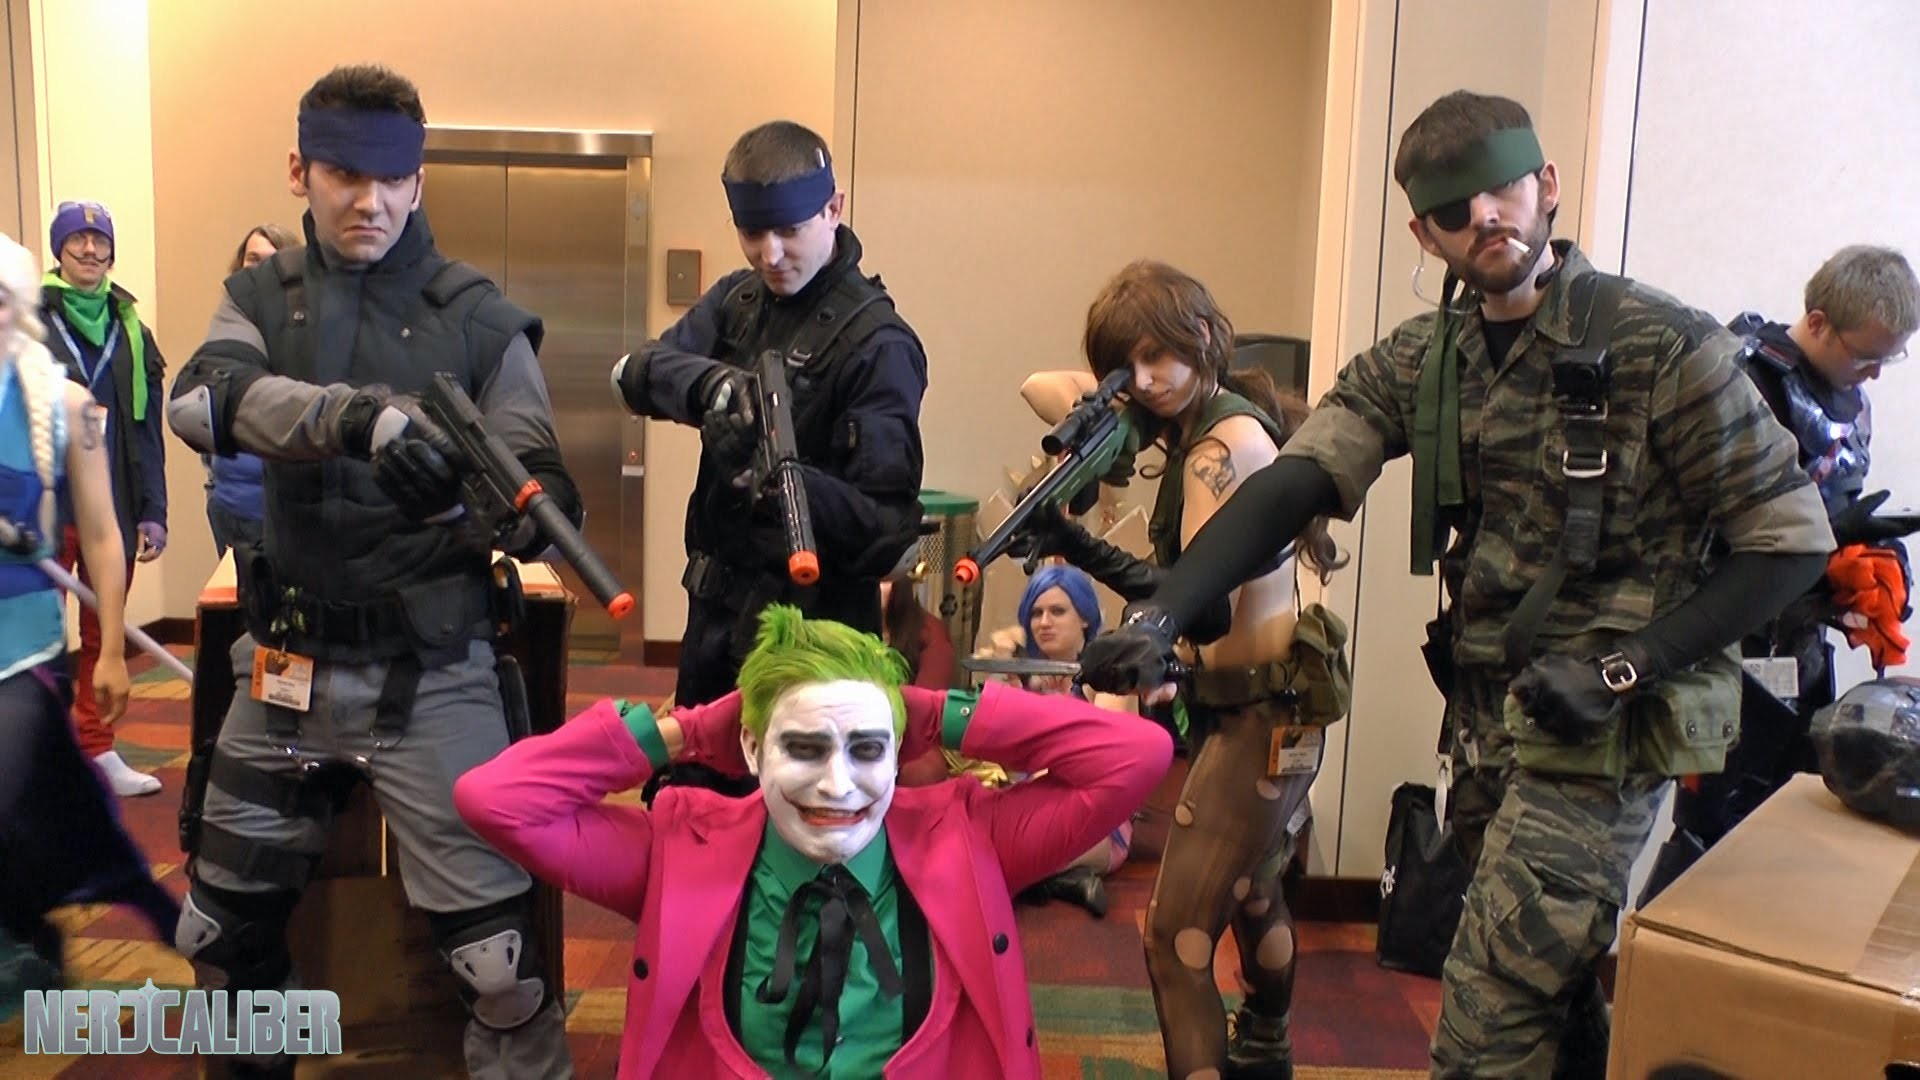 Solid Snakes, Big Boss and Quiet! Metal Gear Solid Cosplay at Gen Con 2014  – YouTube